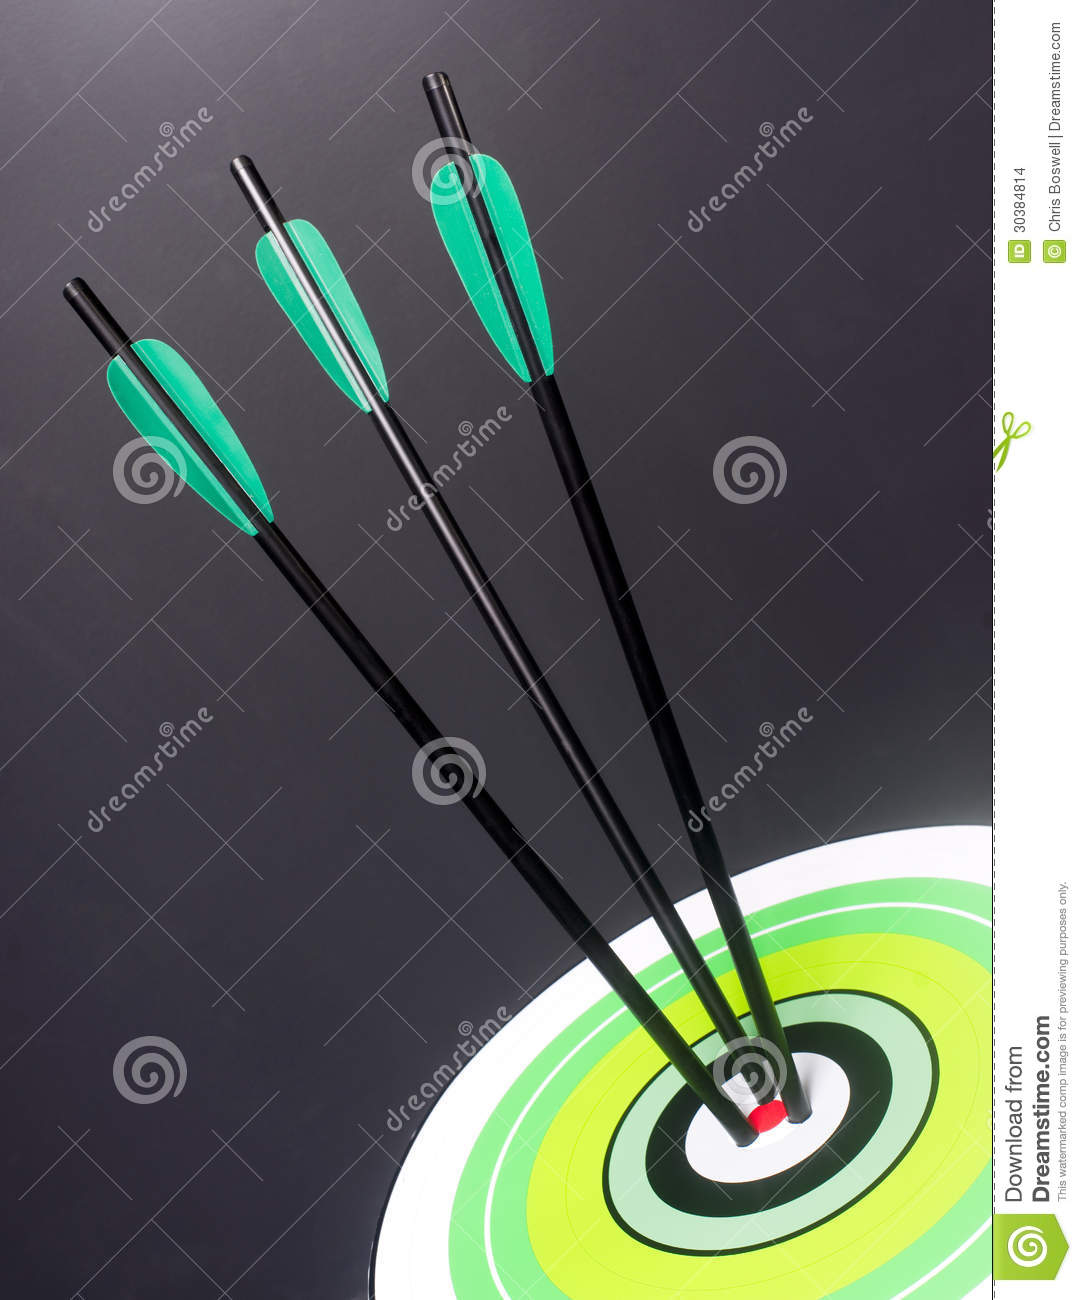 Three Green Black Archery Arrows Hit Round Target Bullseye